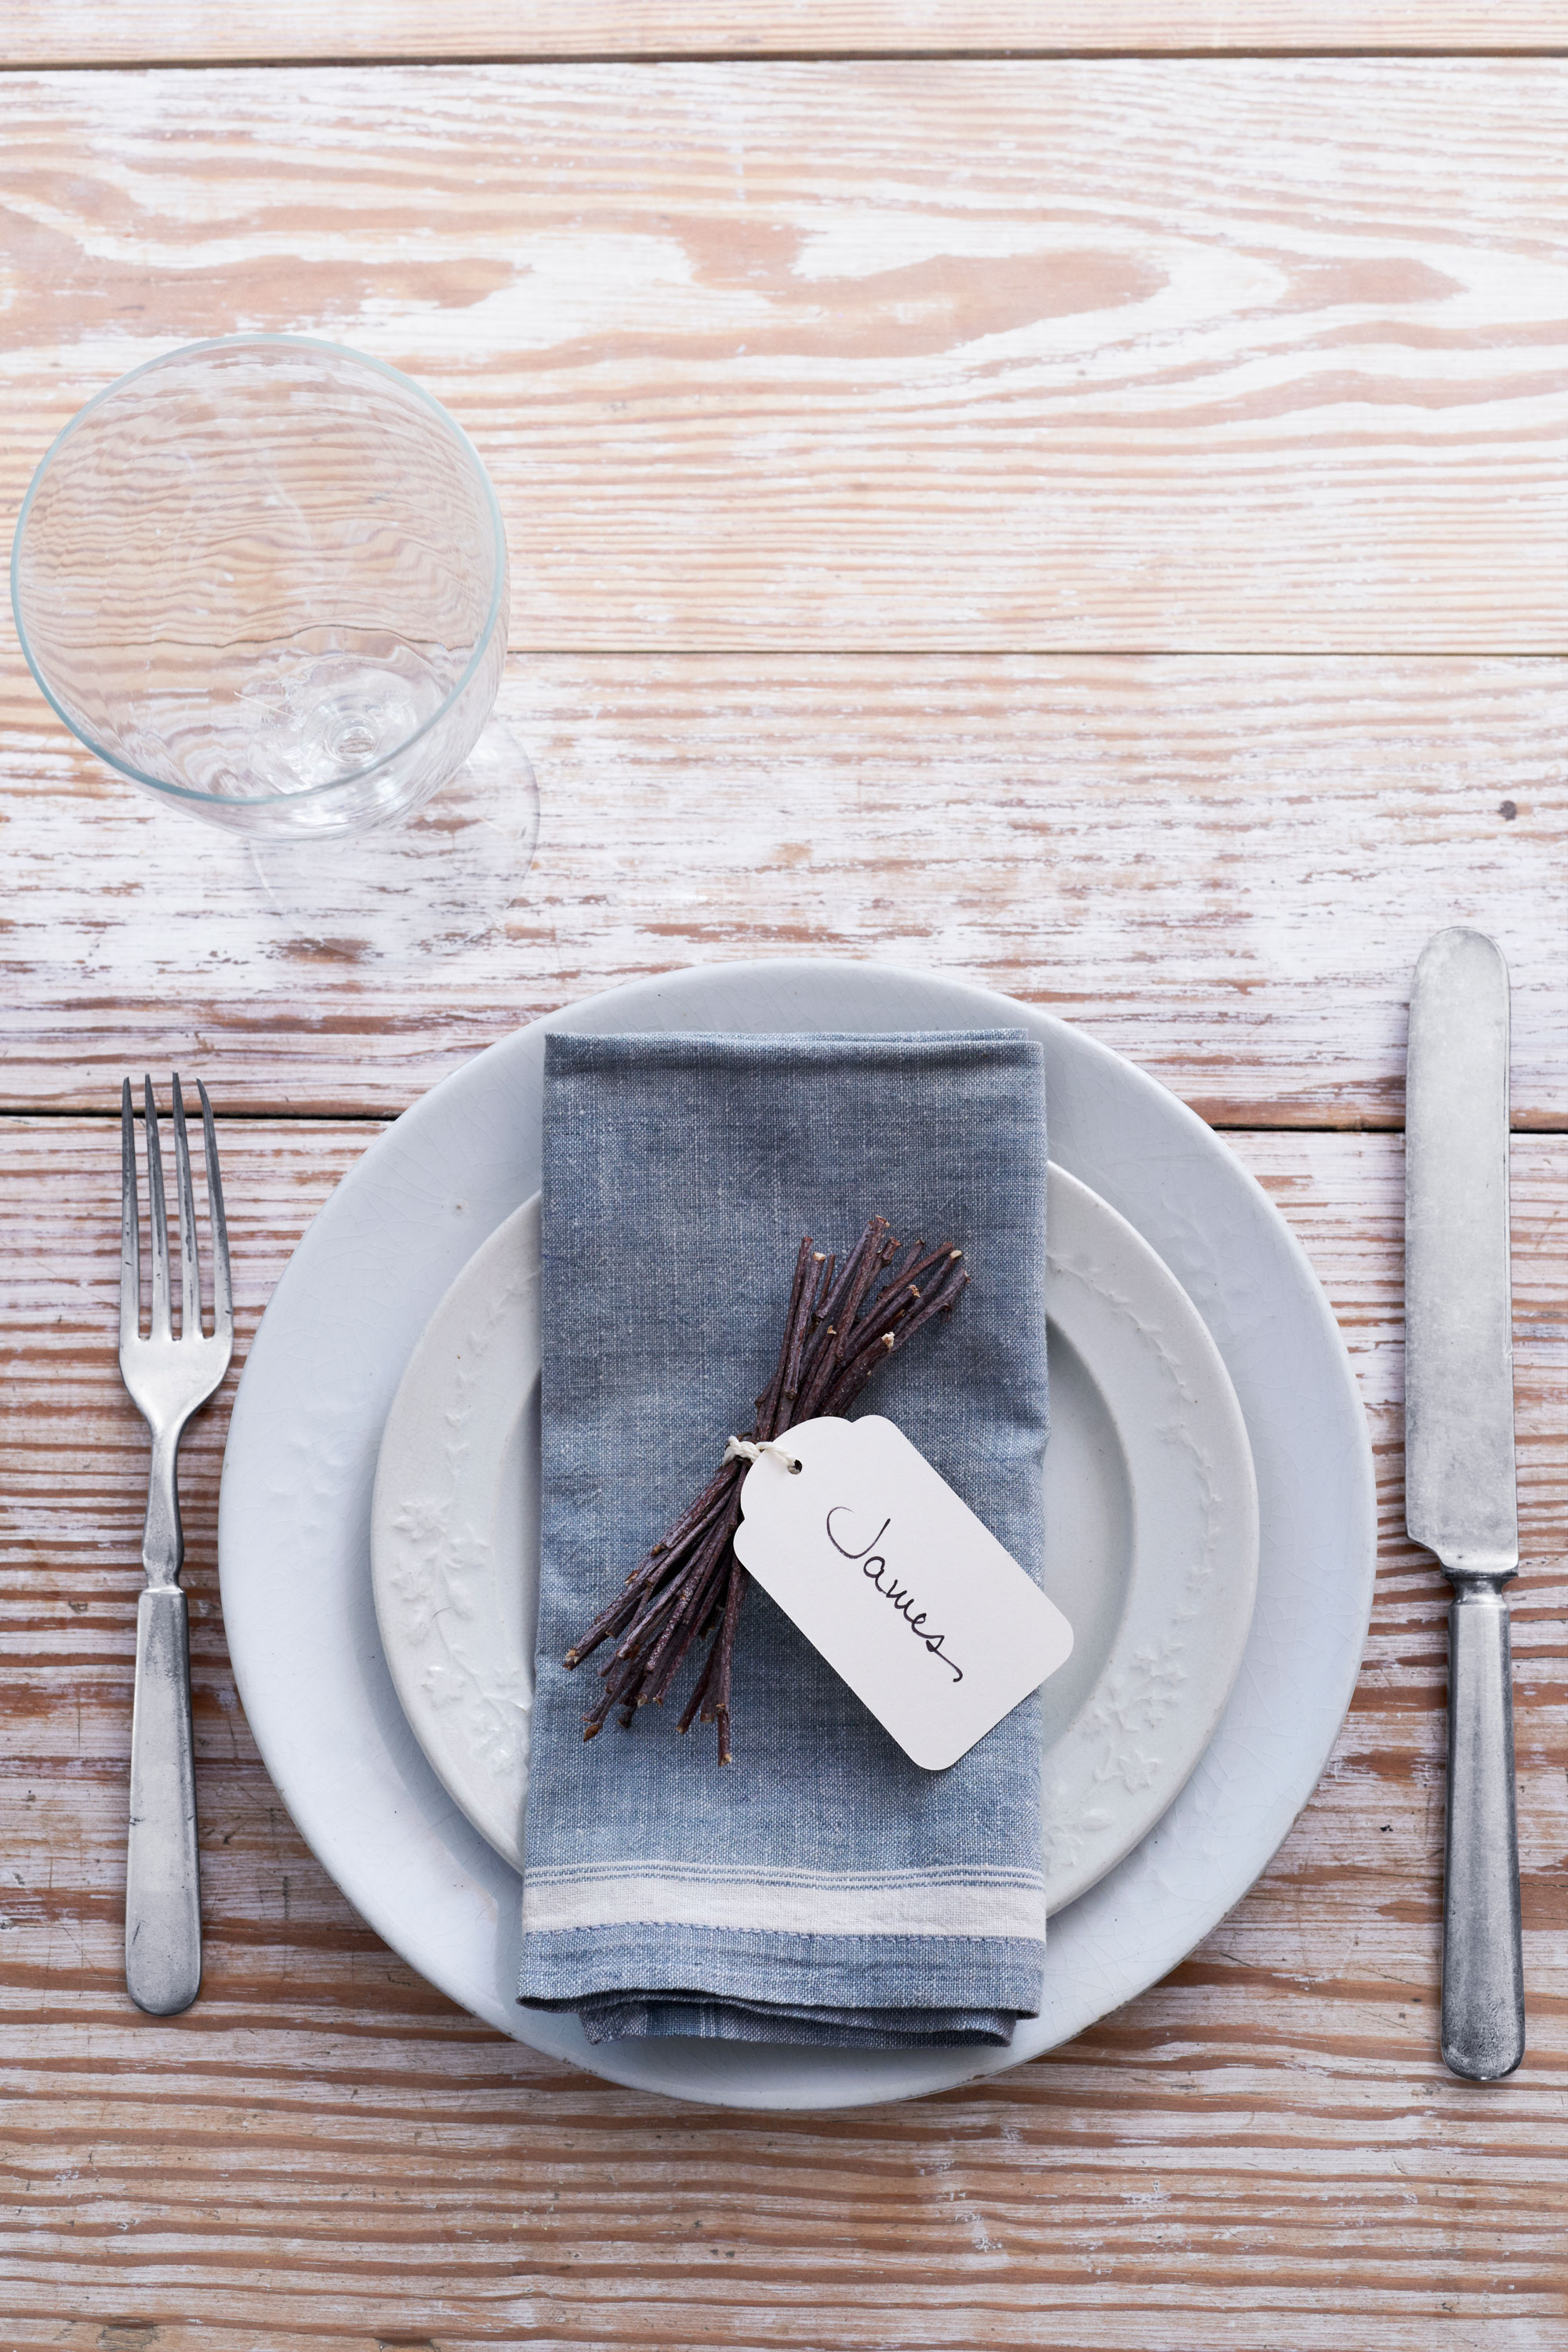 16 thanksgiving place cards diy place card ideas for the holidays